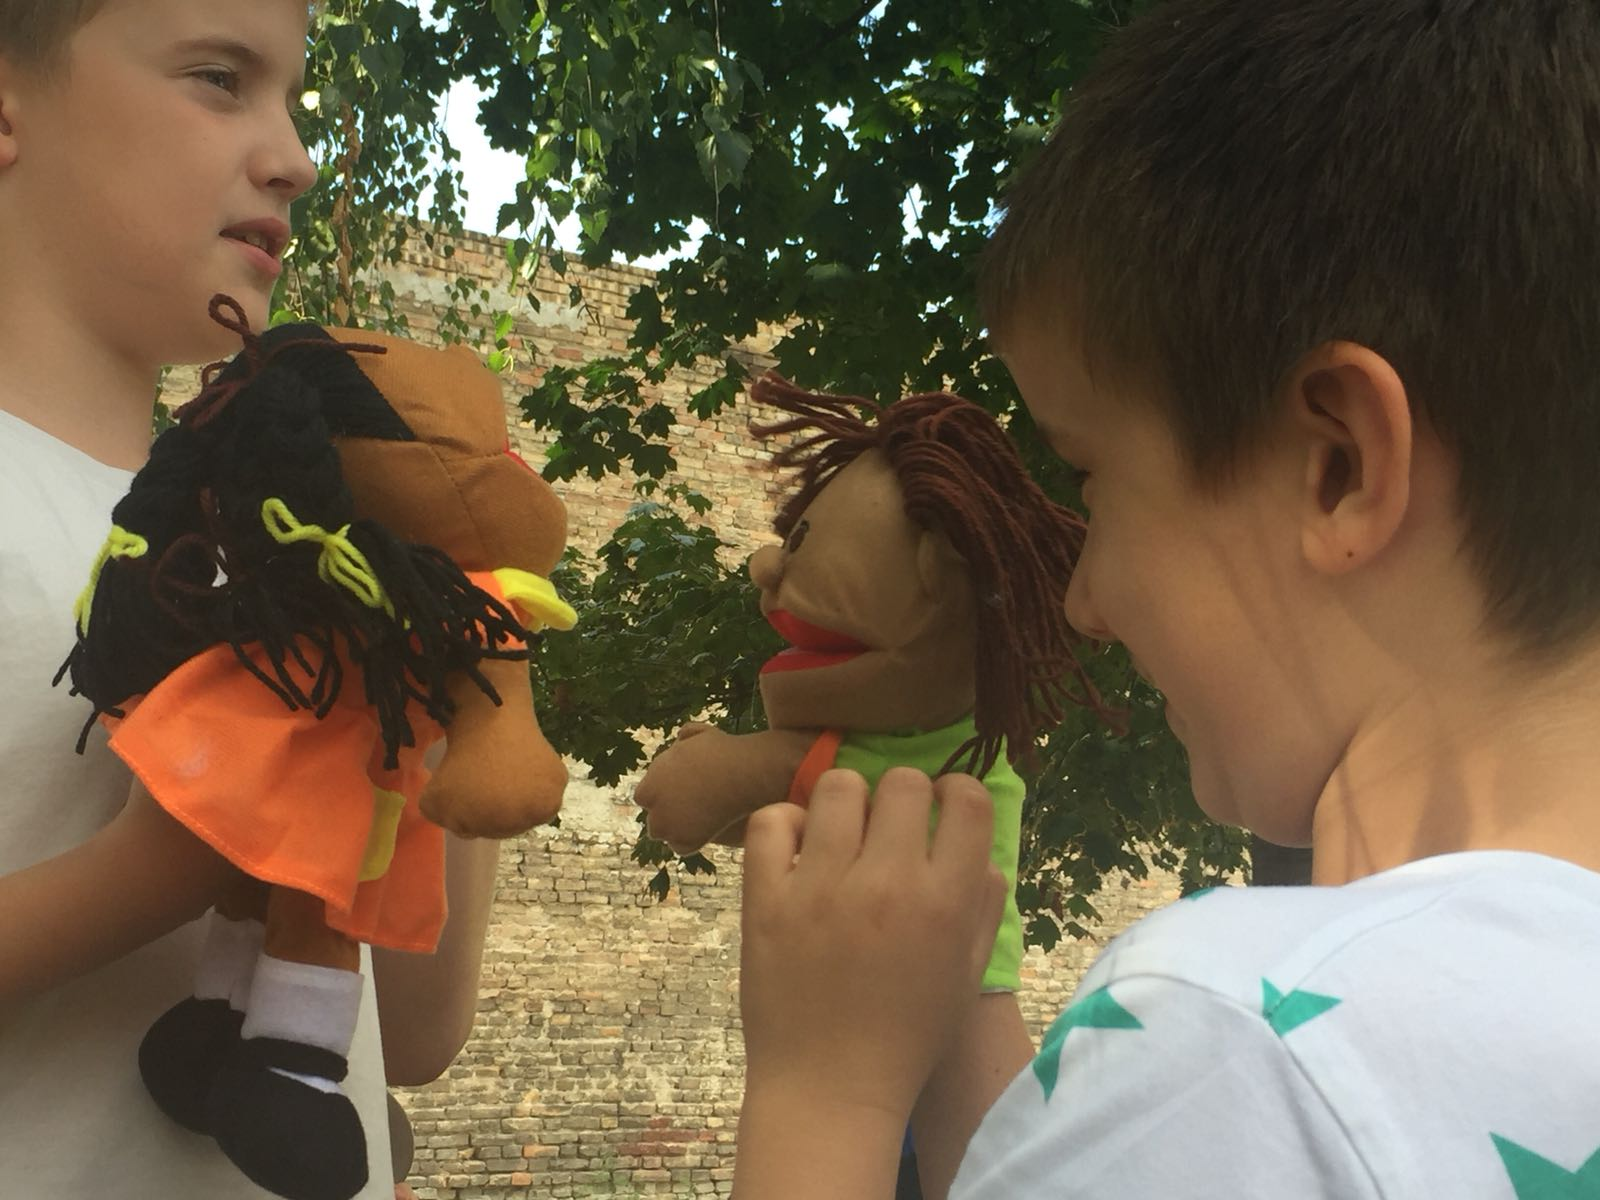 Missionary Jones sent these pictures to show that the children continue to enjoy playing with the puppets.